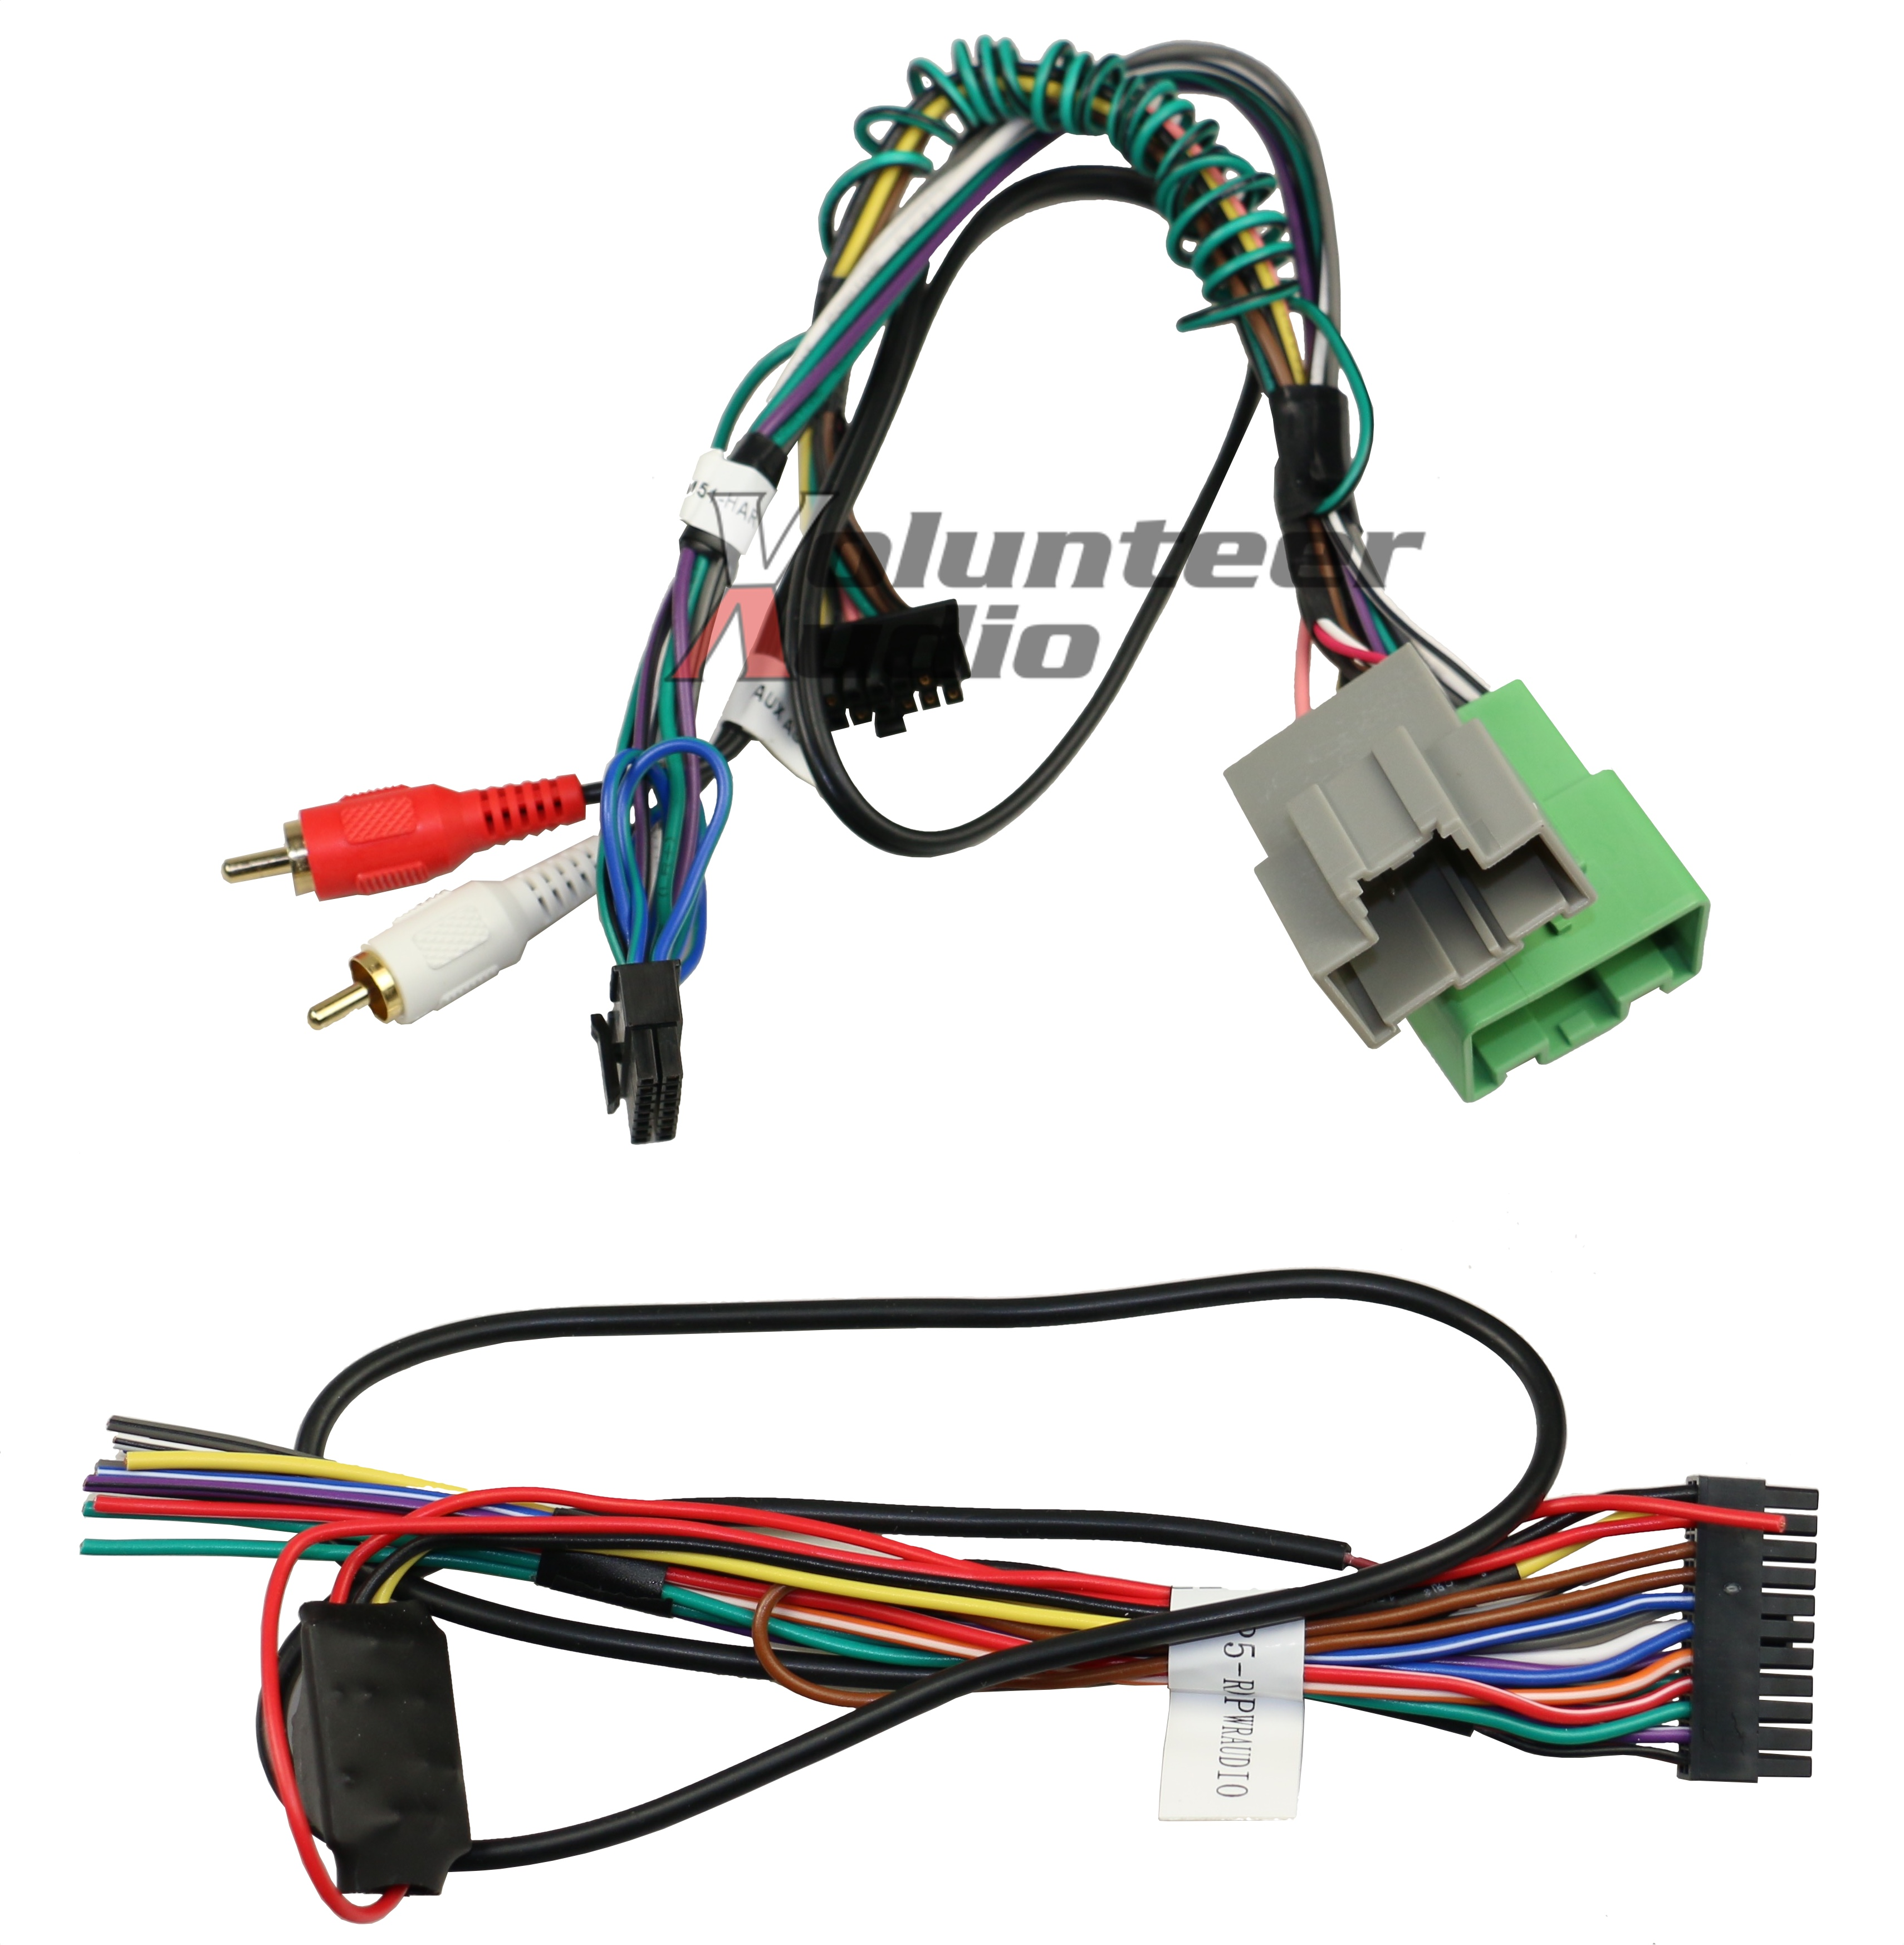 pac rp gm for select gm vehicle radio installation wiring click thumbnails to enlarge pac rp5 gm51